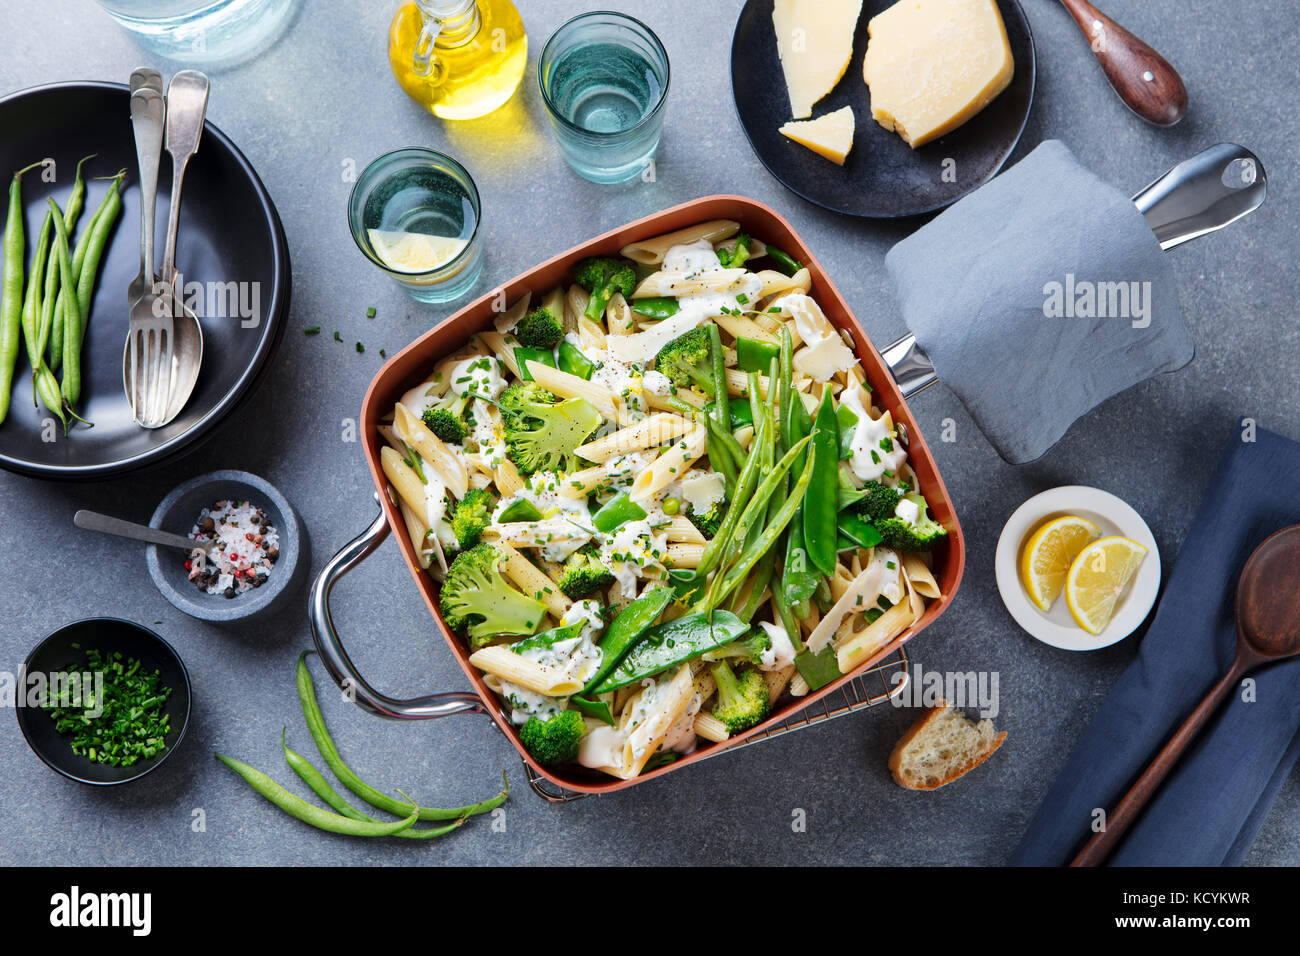 Pasta with green vegetables and creamy sauce in copper saucepan. Grey stone background. Top view. - Stock Image